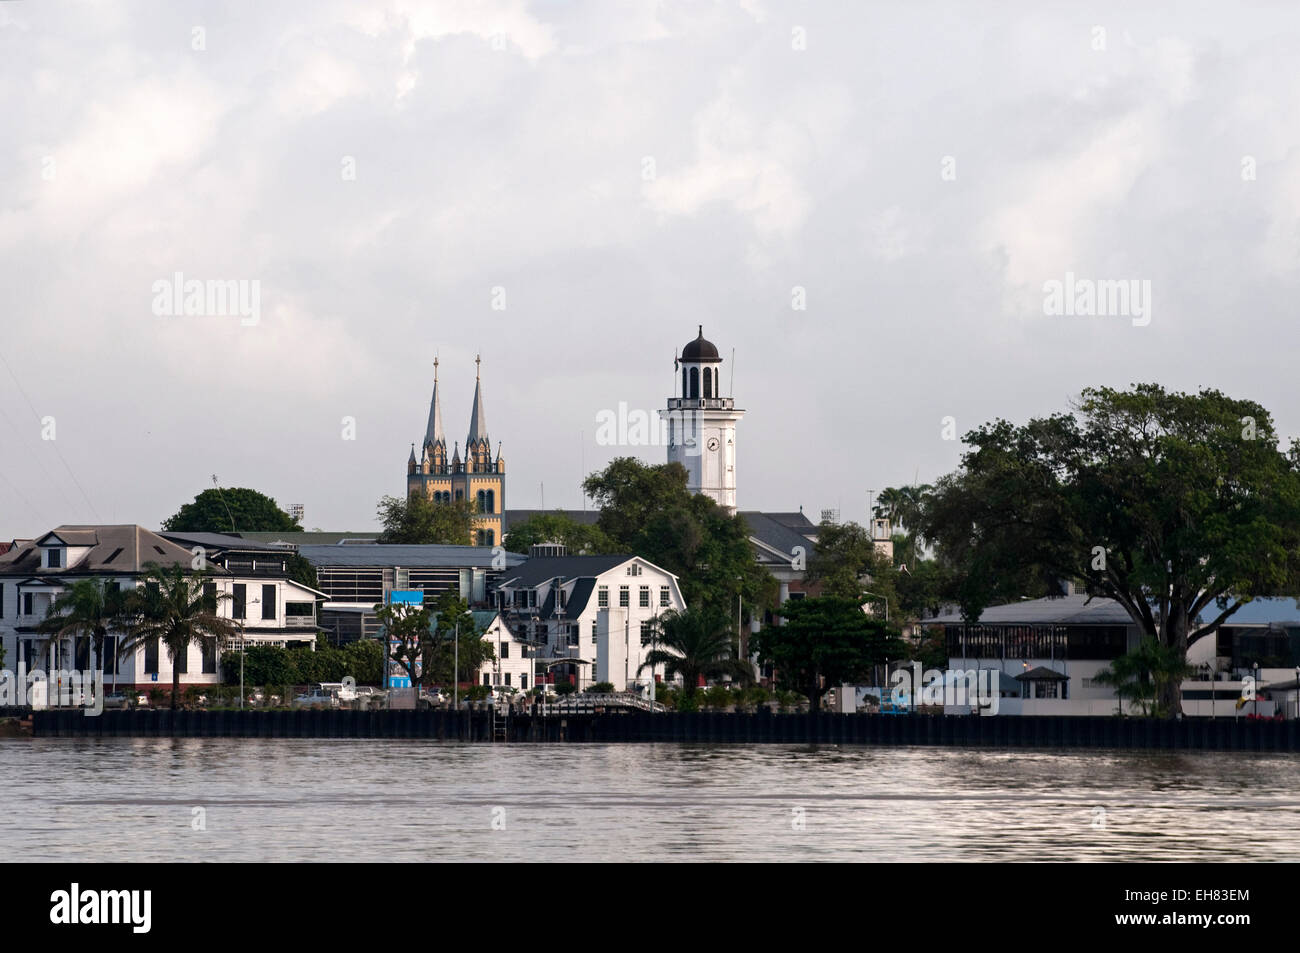 View of Paramaribo from the river, Paramaribo, Suriname, South America - Stock Image